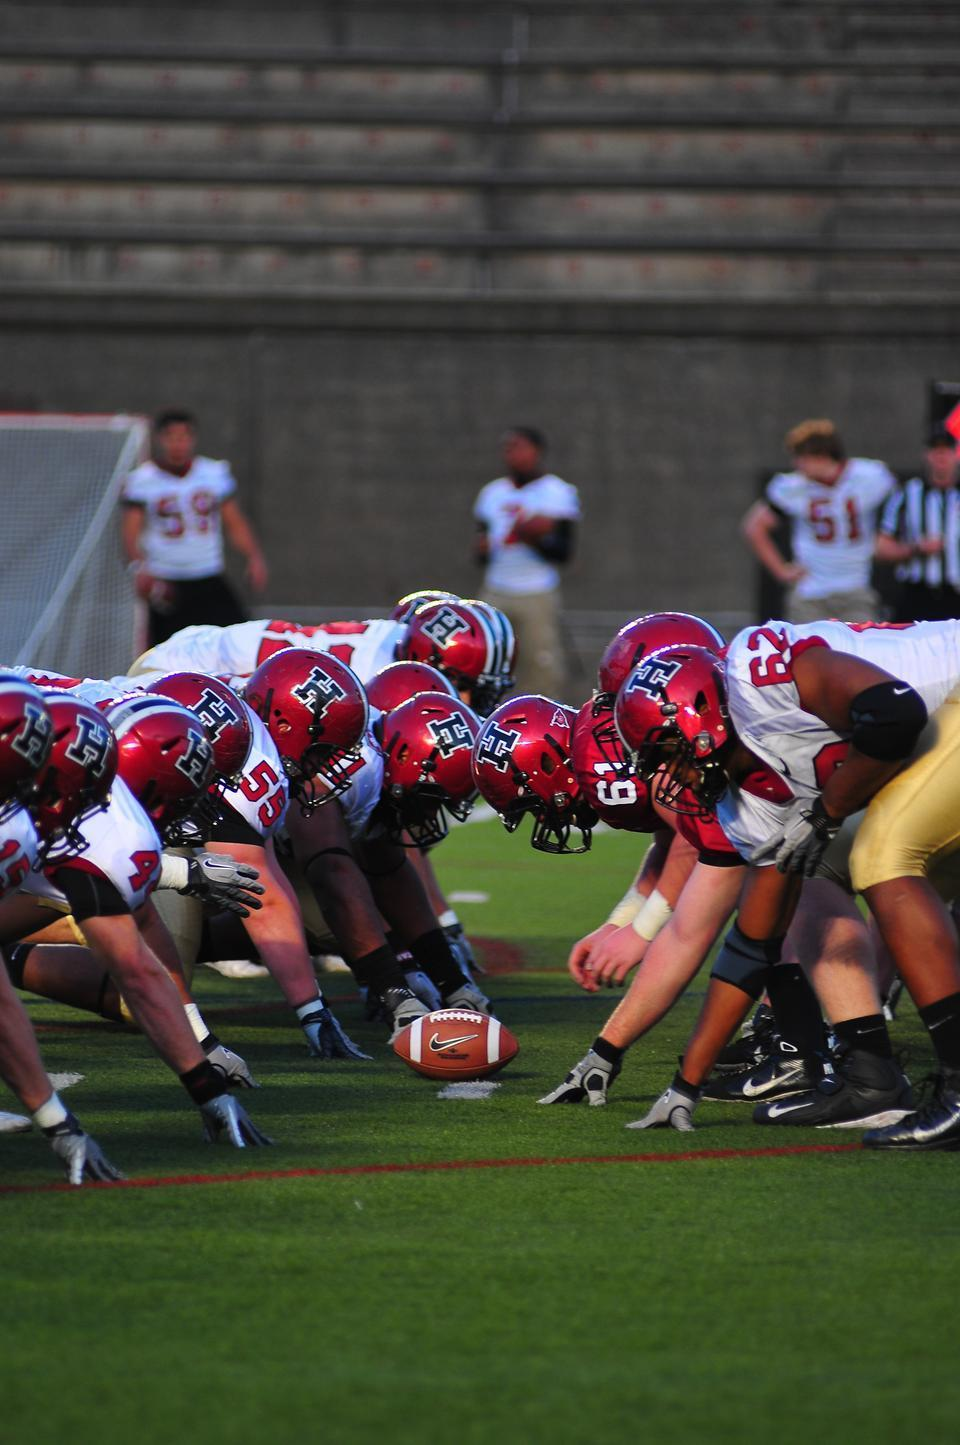 The Crimson, shown here in its annual spring game, will open the 2012 season at home against San Diego on Saturday afternoon. The two teams have never met, but the matchup with Harvard will be the Toreros' ninth time facing an Ivy opponent, the most recent of which was Yale in 2006.